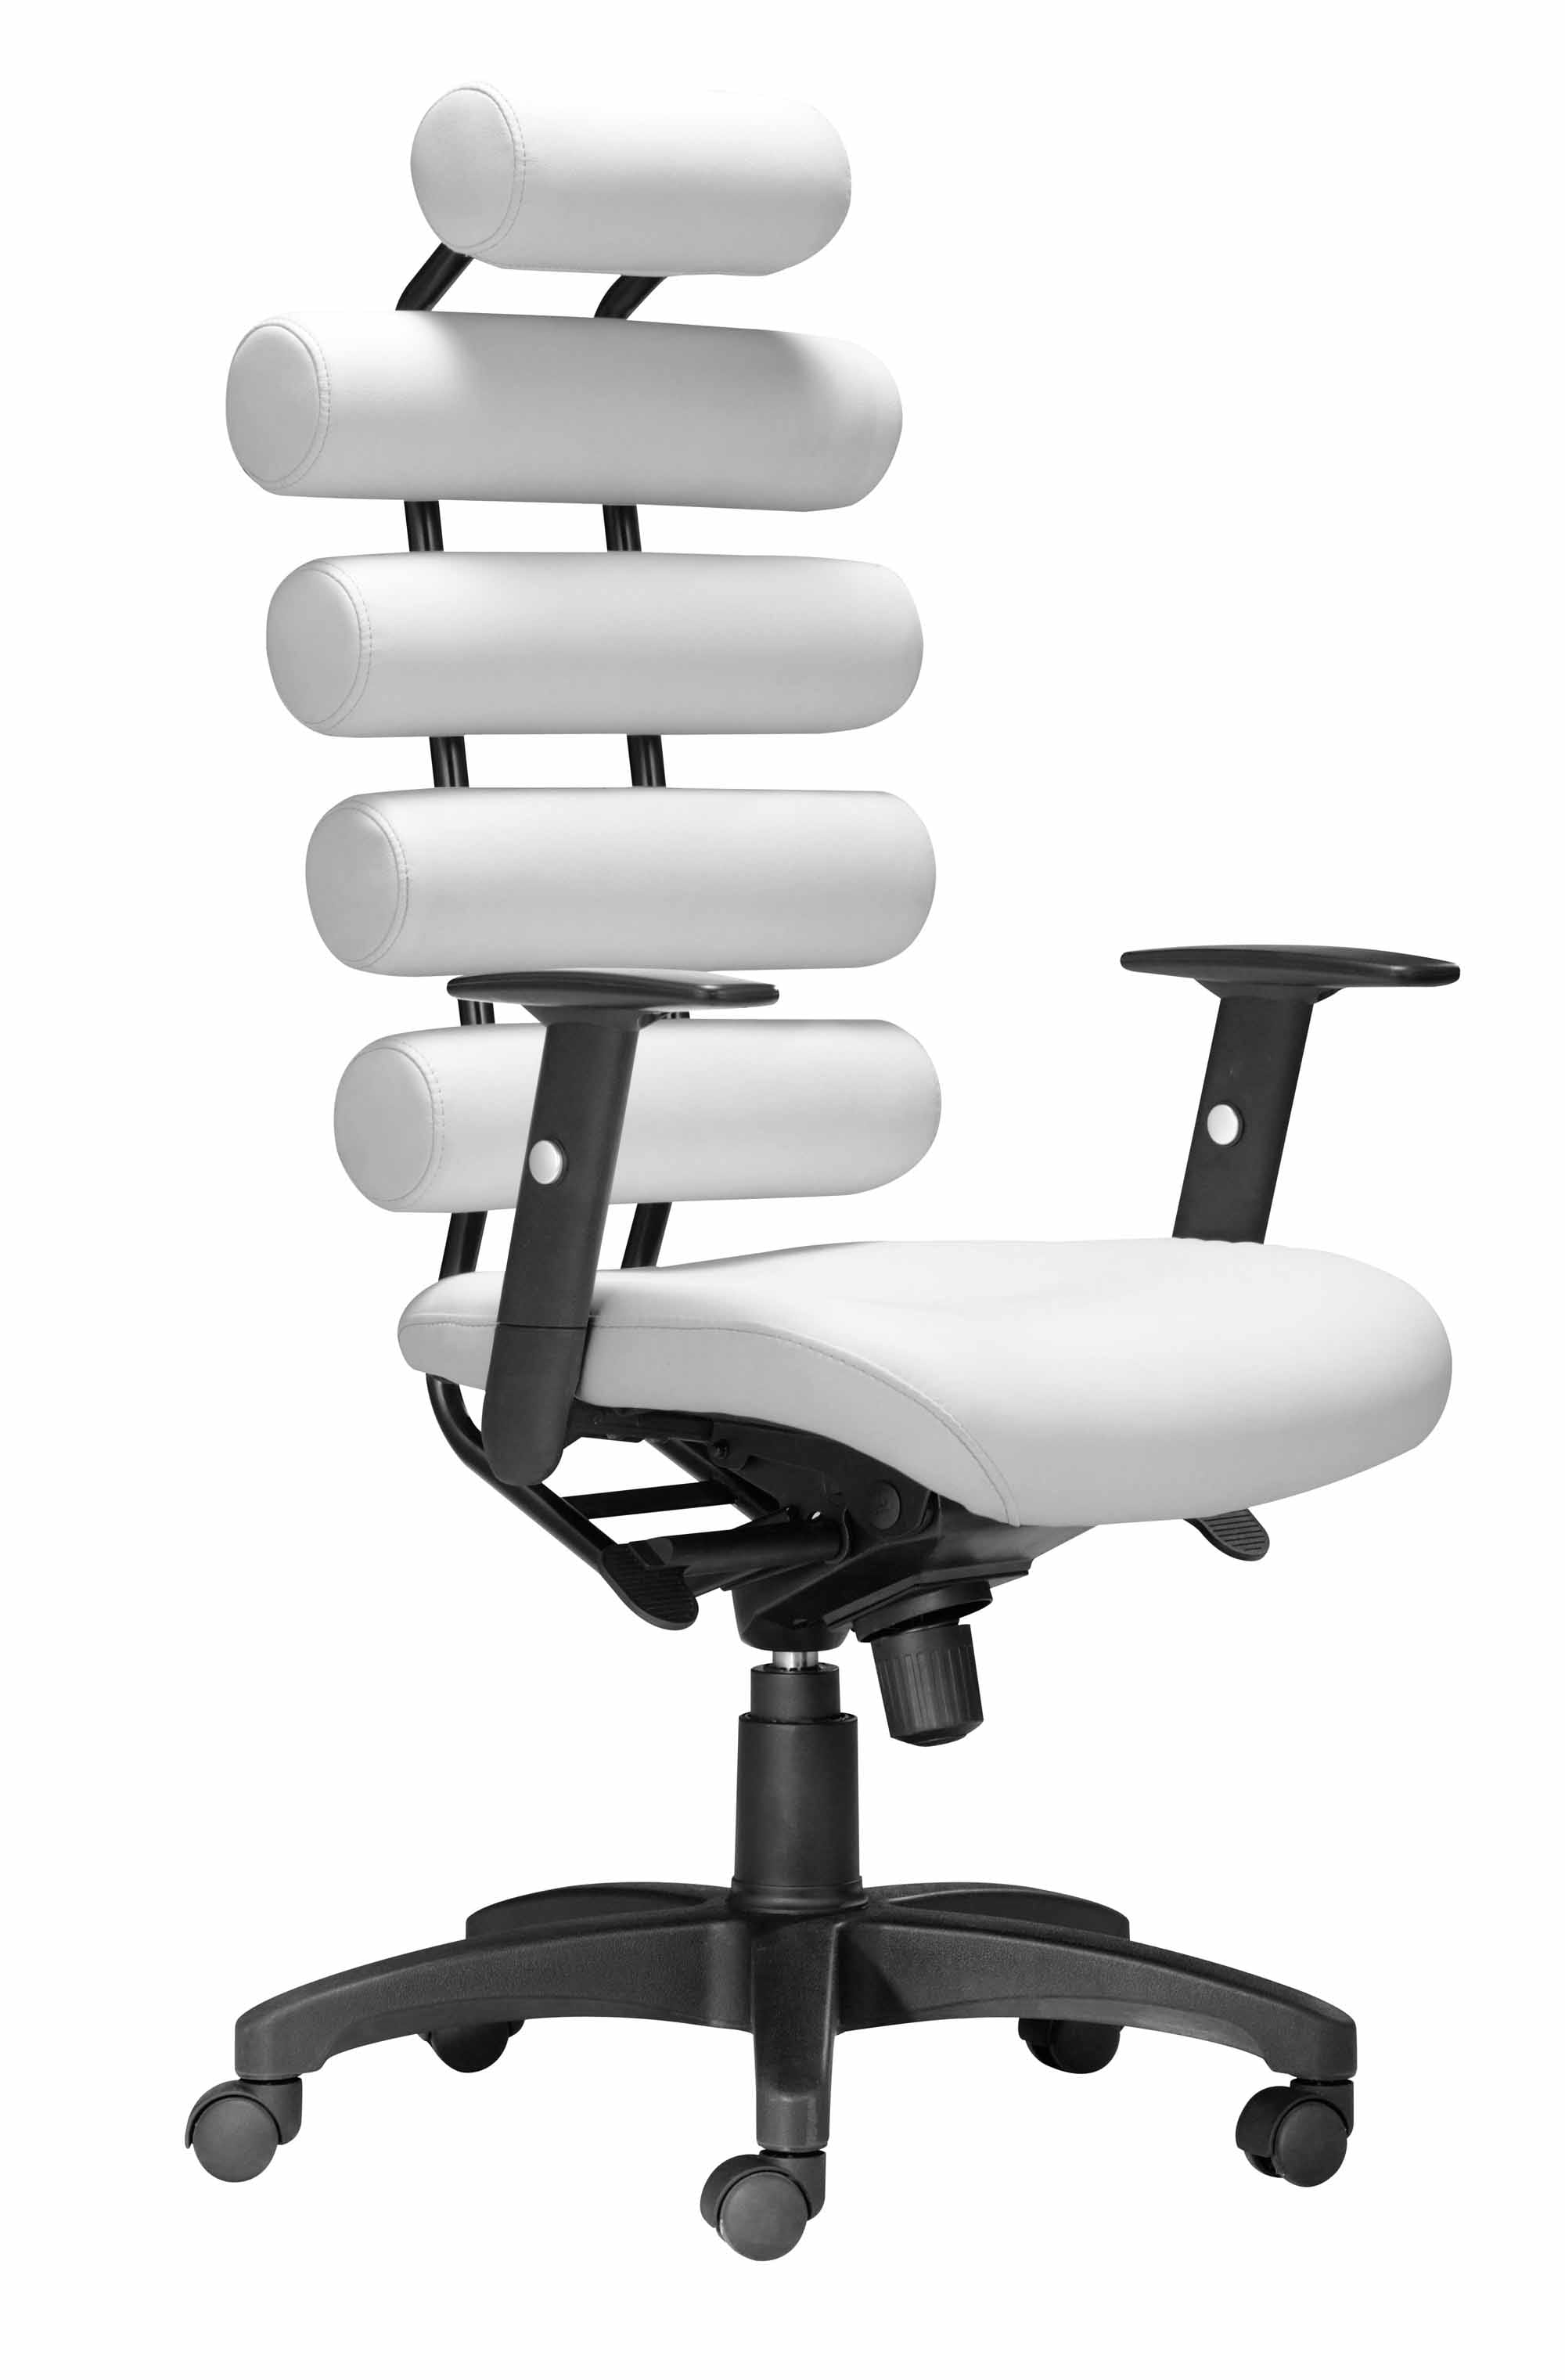 Stupendous Unico Office Chair White By Zuo Modern Caraccident5 Cool Chair Designs And Ideas Caraccident5Info